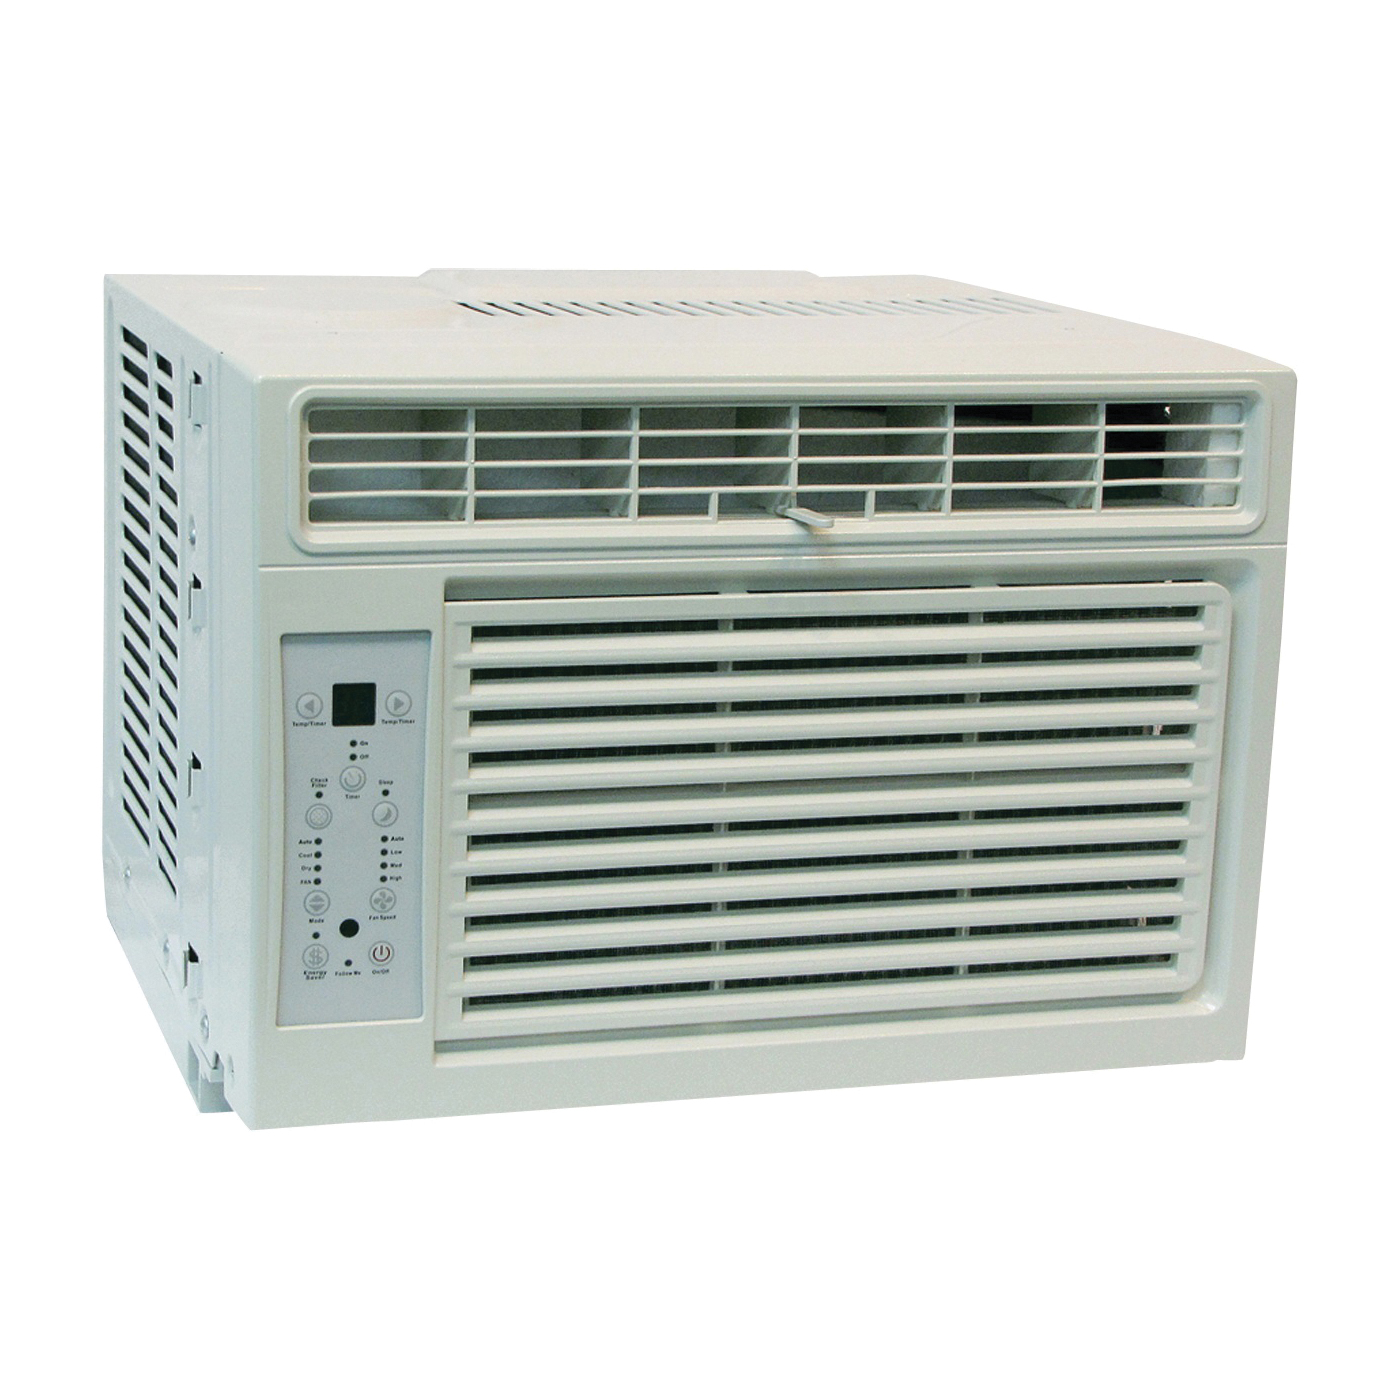 Picture of Comfort-Aire RADS-61P Room Air Conditioner, 115 V, 60 Hz, 6000 Btu/hr Cooling, 12.2/12.1 EER, 56/54/52 dB